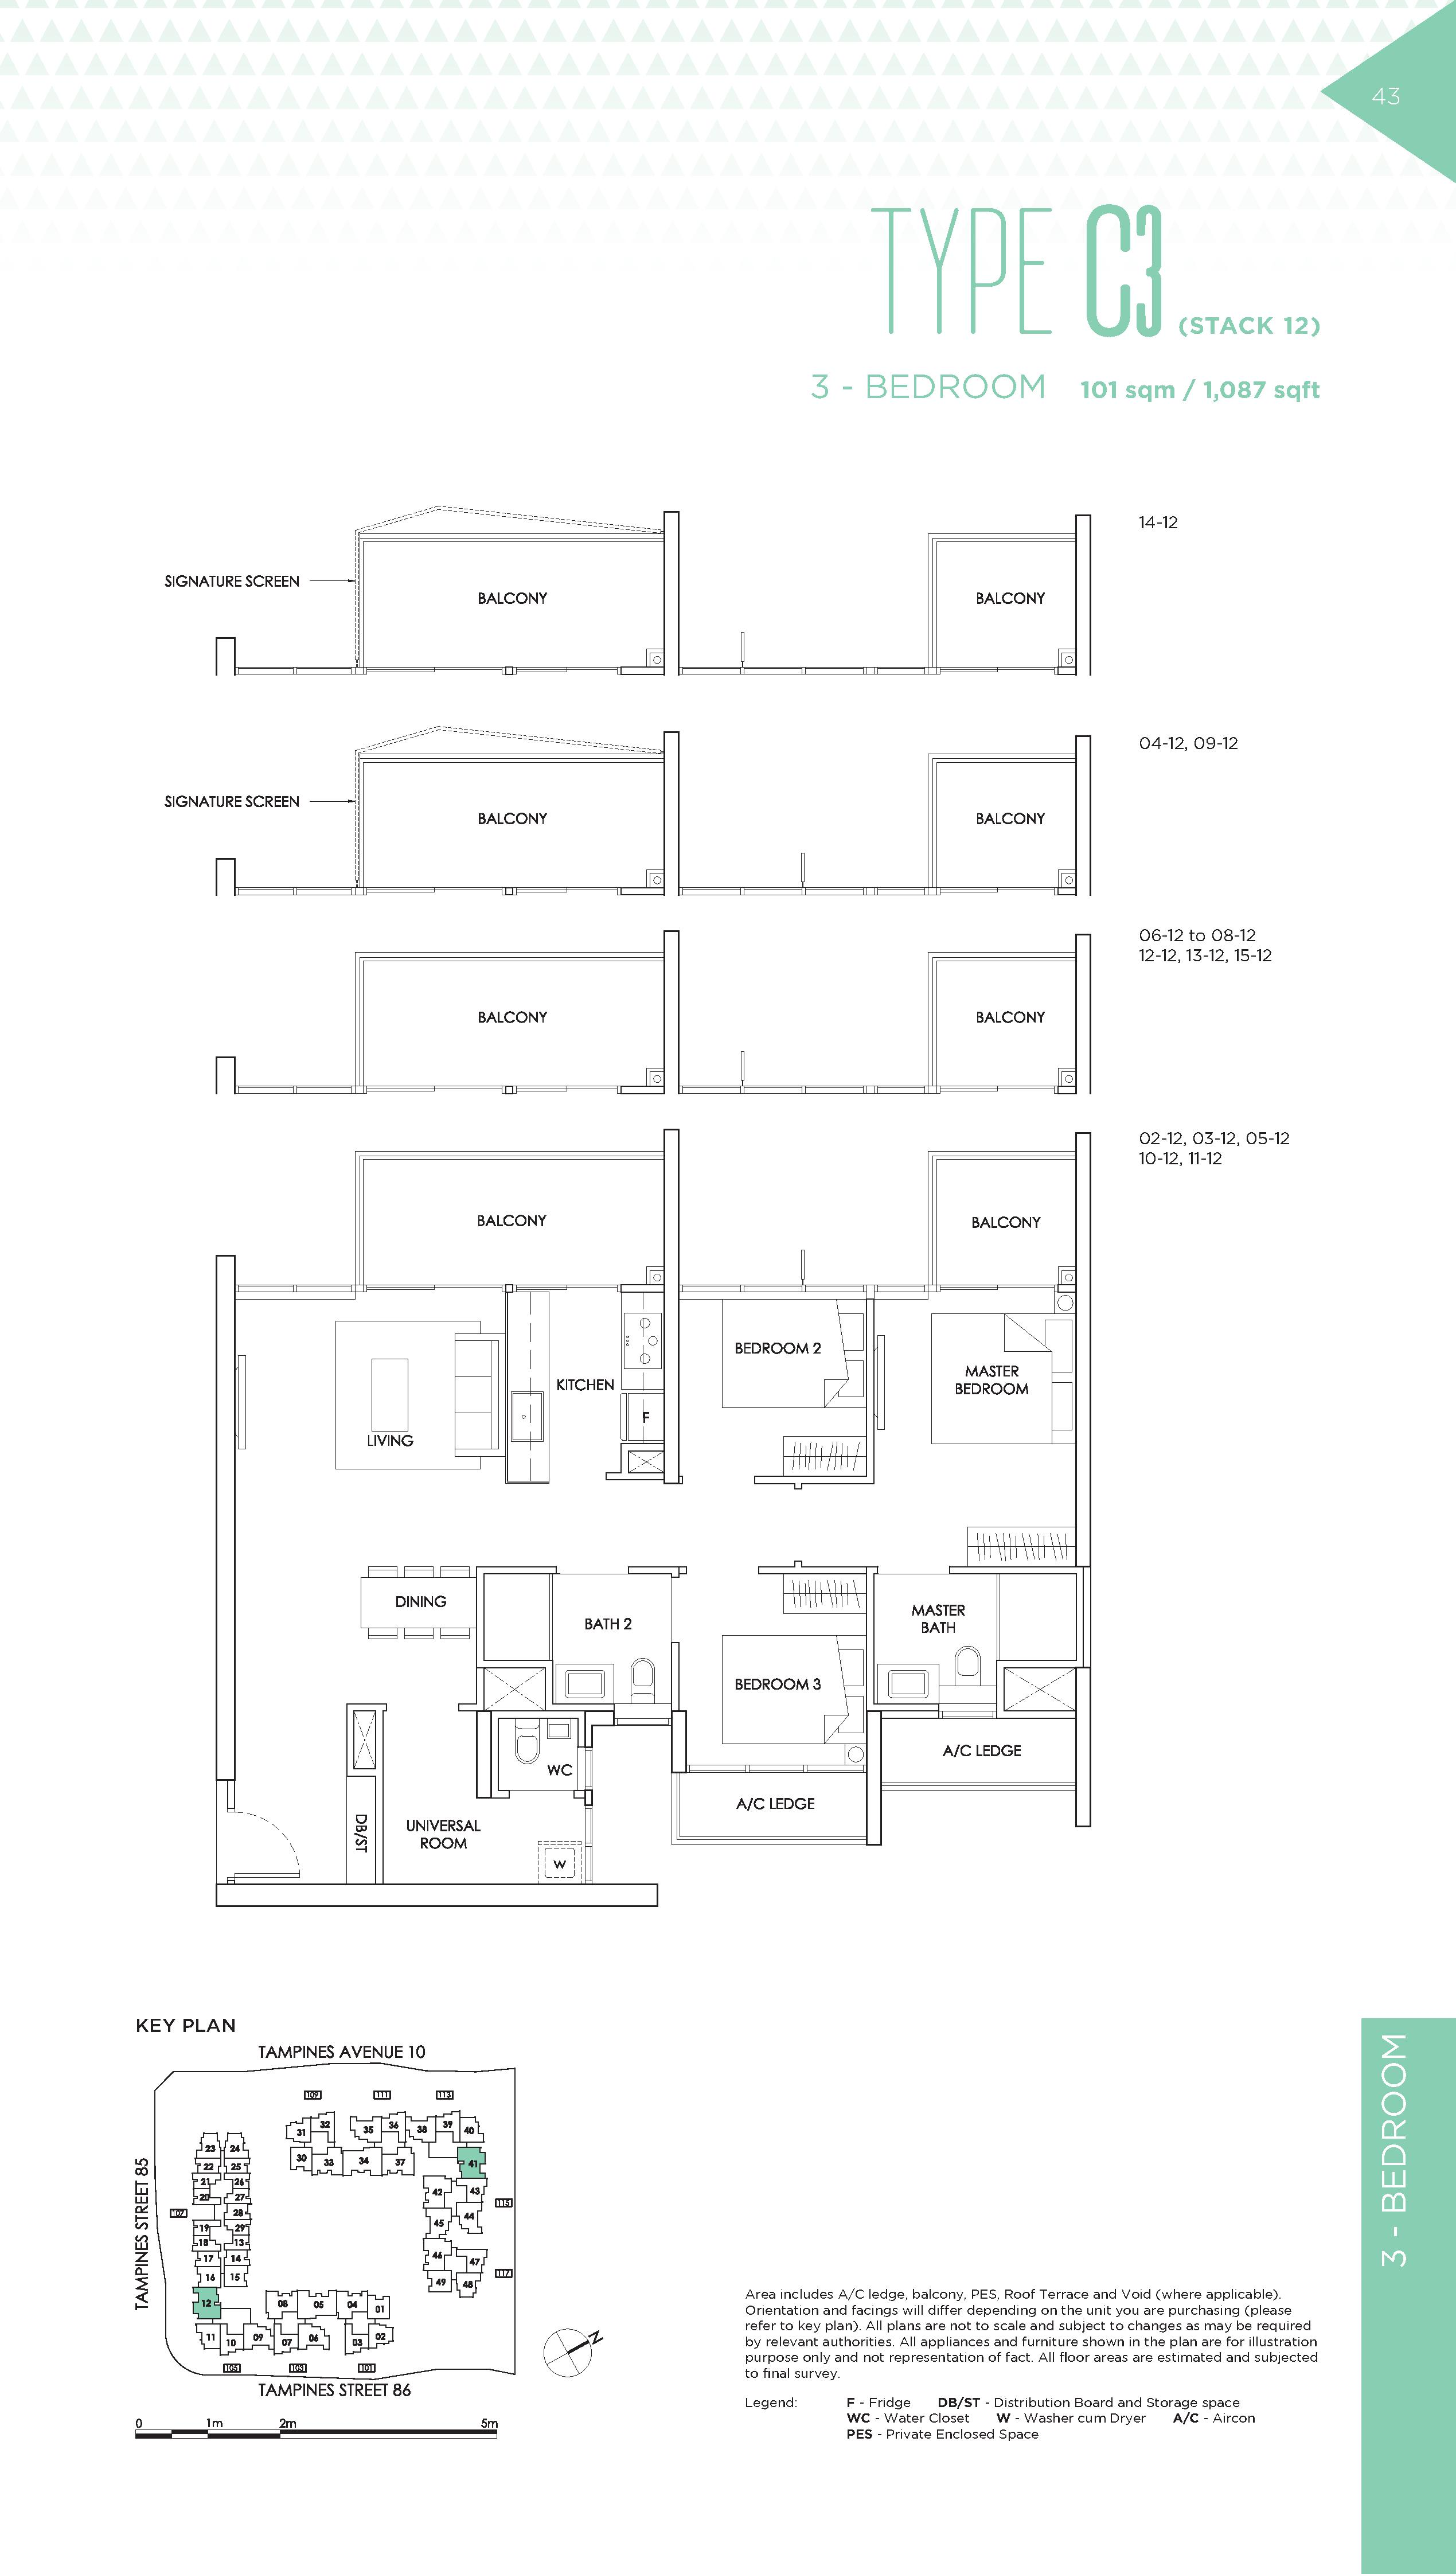 The Alps Residences 3 Bedroom Floor Plans Type C3(Stack 12)